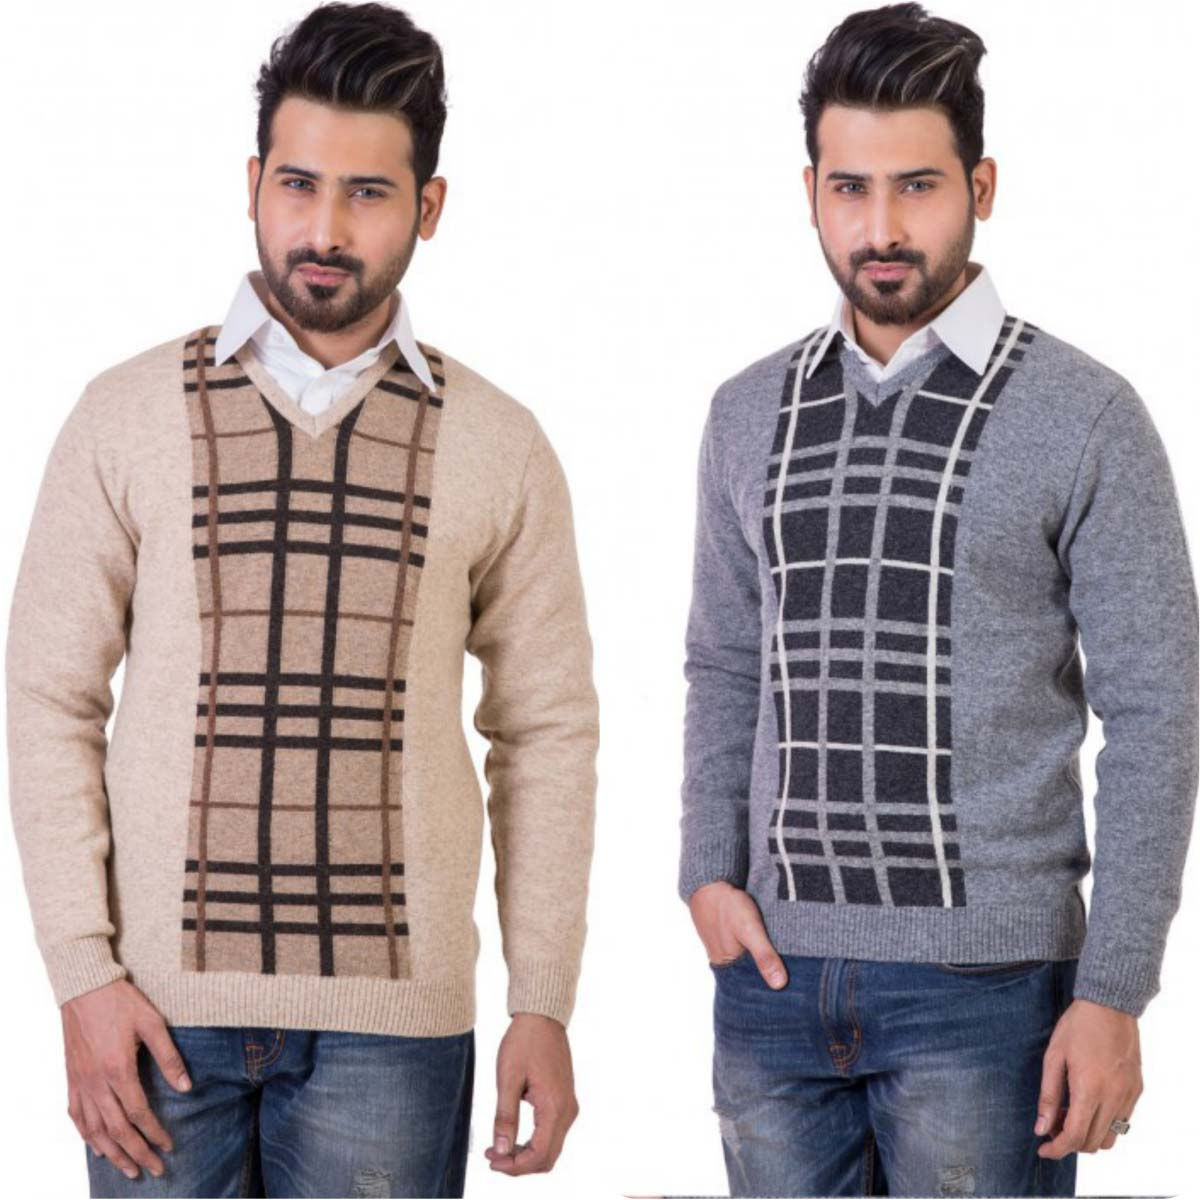 bonanza-winter-sweaters-and-outfits-2017-2018-for-men-4